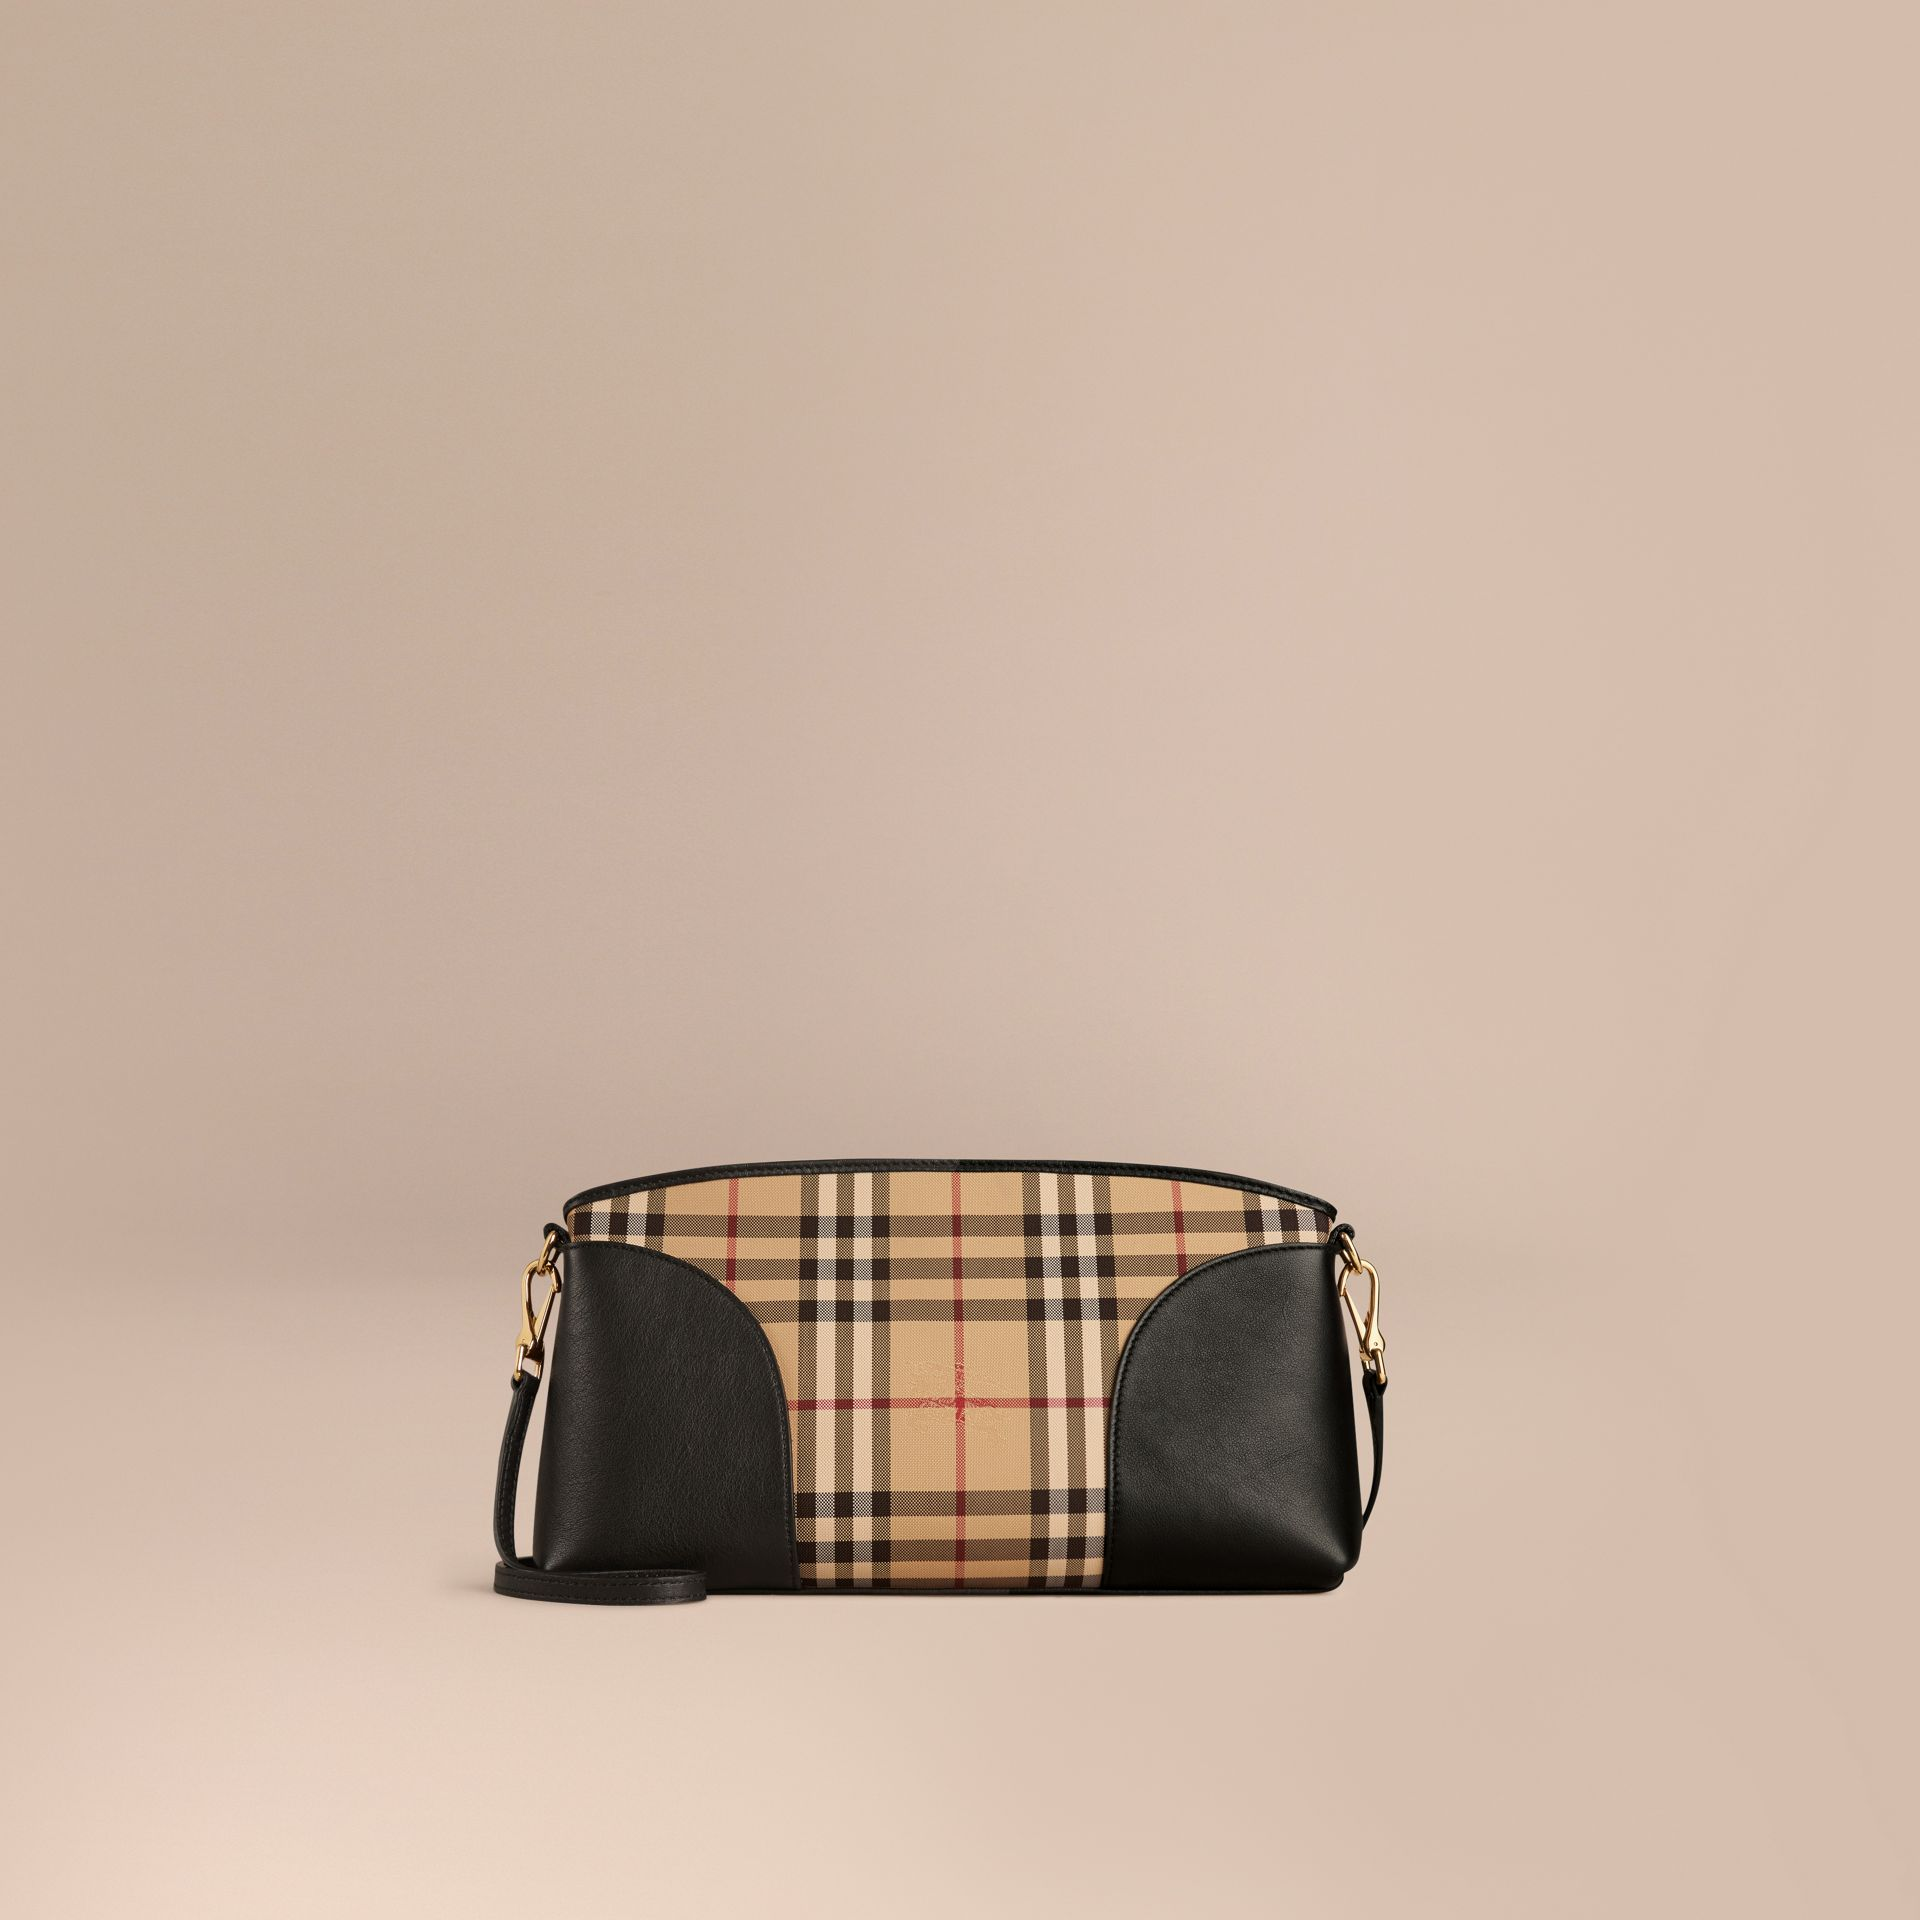 Honey/black Horseferry Check and Leather Clutch Bag Honey/black - gallery image 8